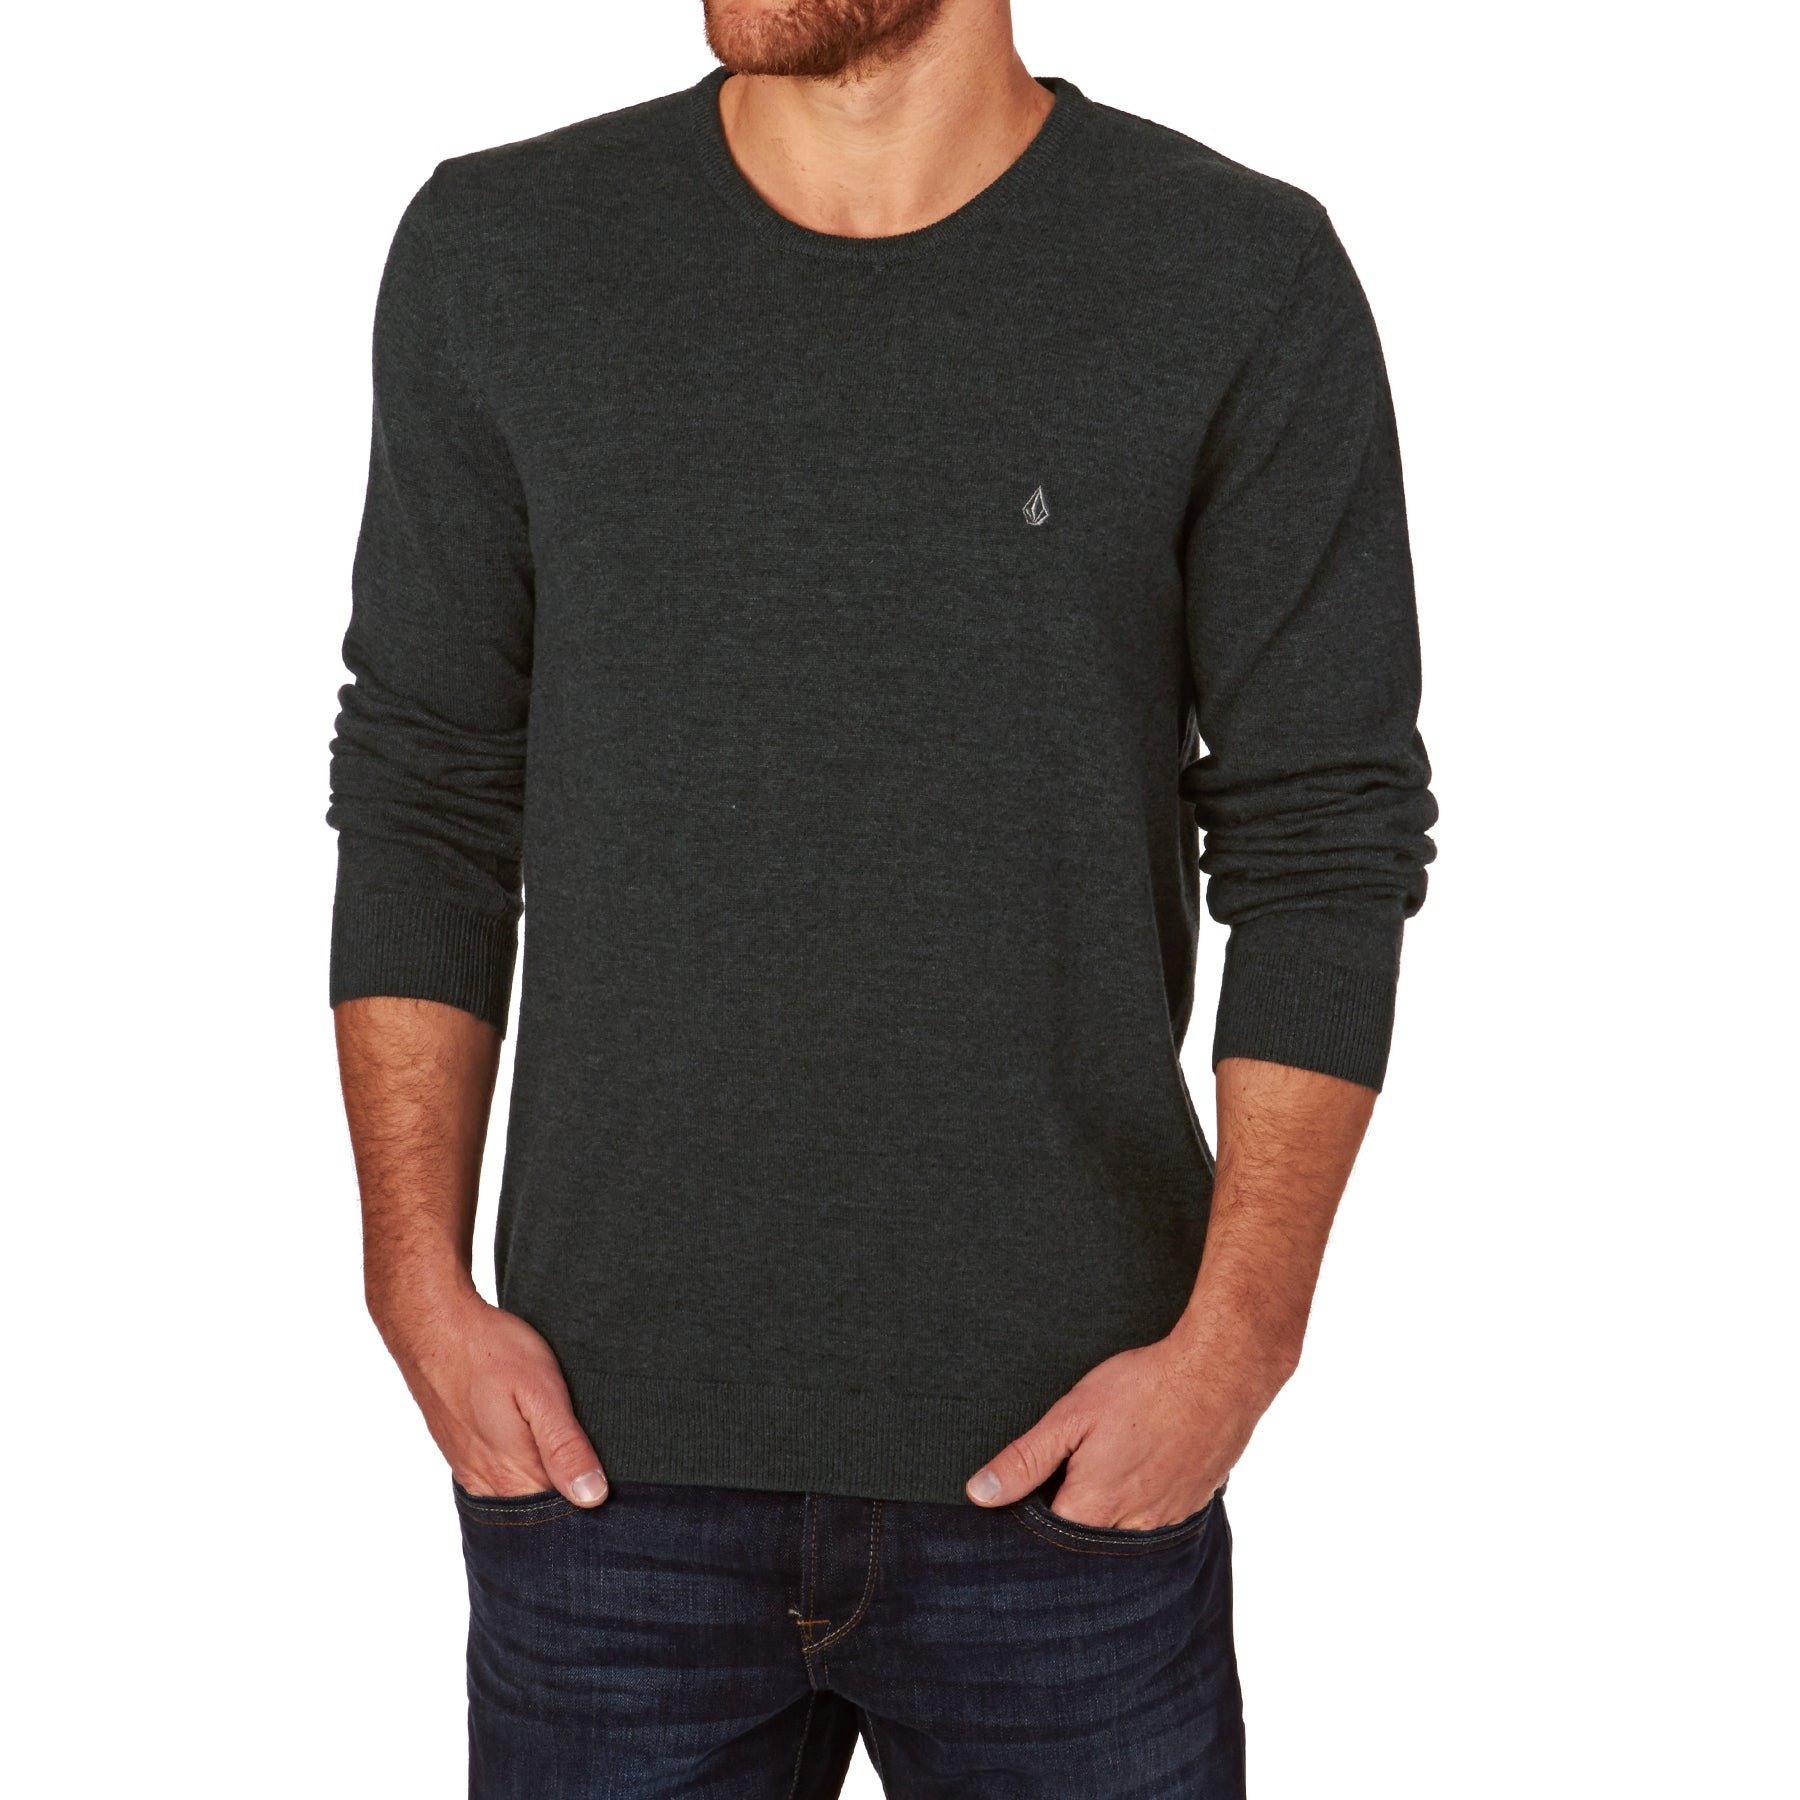 Sweater Volcom Uperstand Crew - Black